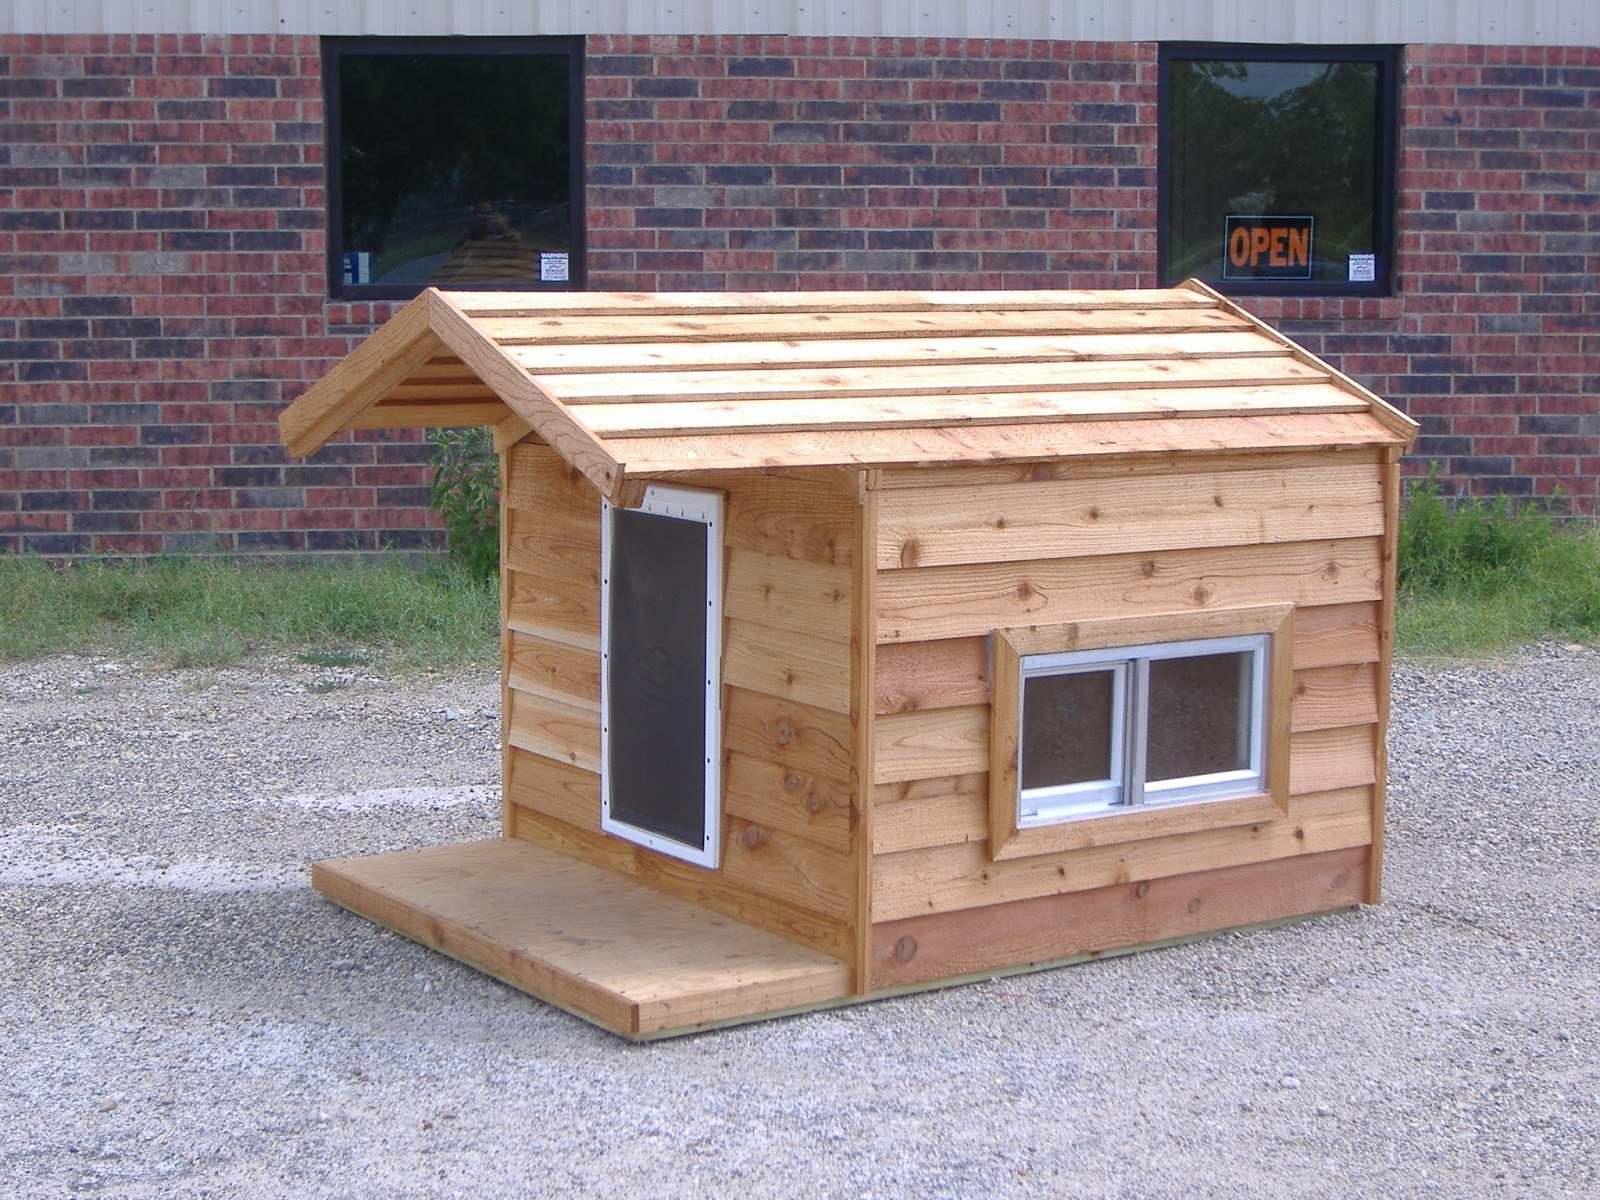 Diy dog houses dog house plans aussiedoodle and labradoodle 966e17fa05e9405b6fe6e134f9b75691 dog house condo 48x66x46 custom large insulated heated dog house with porch open top 2 windows hound heater door malvernweather Image collections